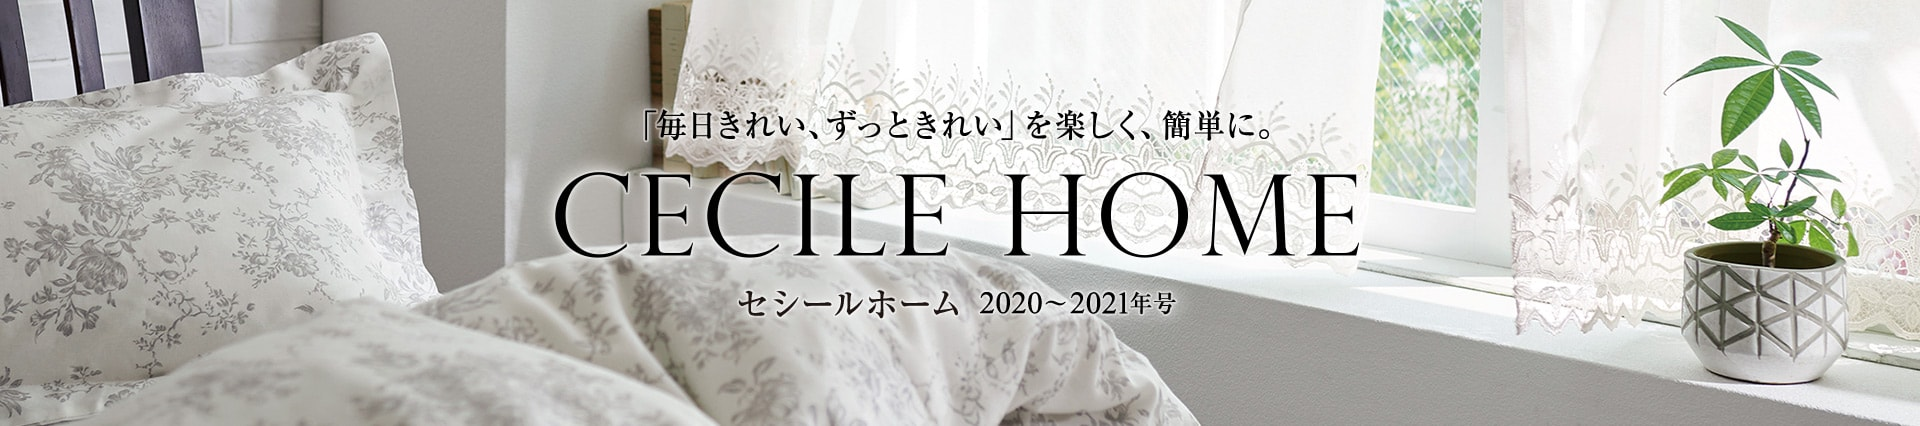 CECILE HOME カタログ